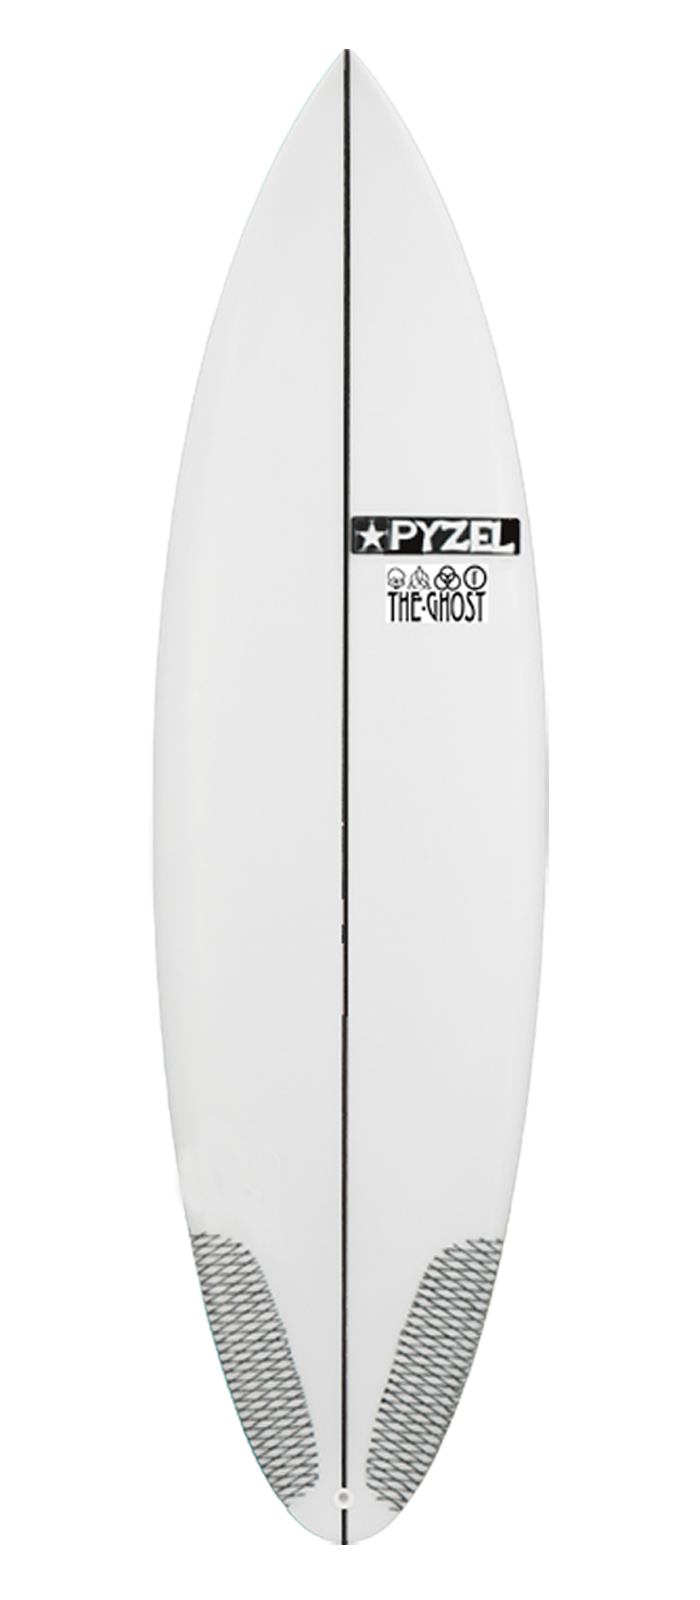 GROM GHOST surfboard model deck